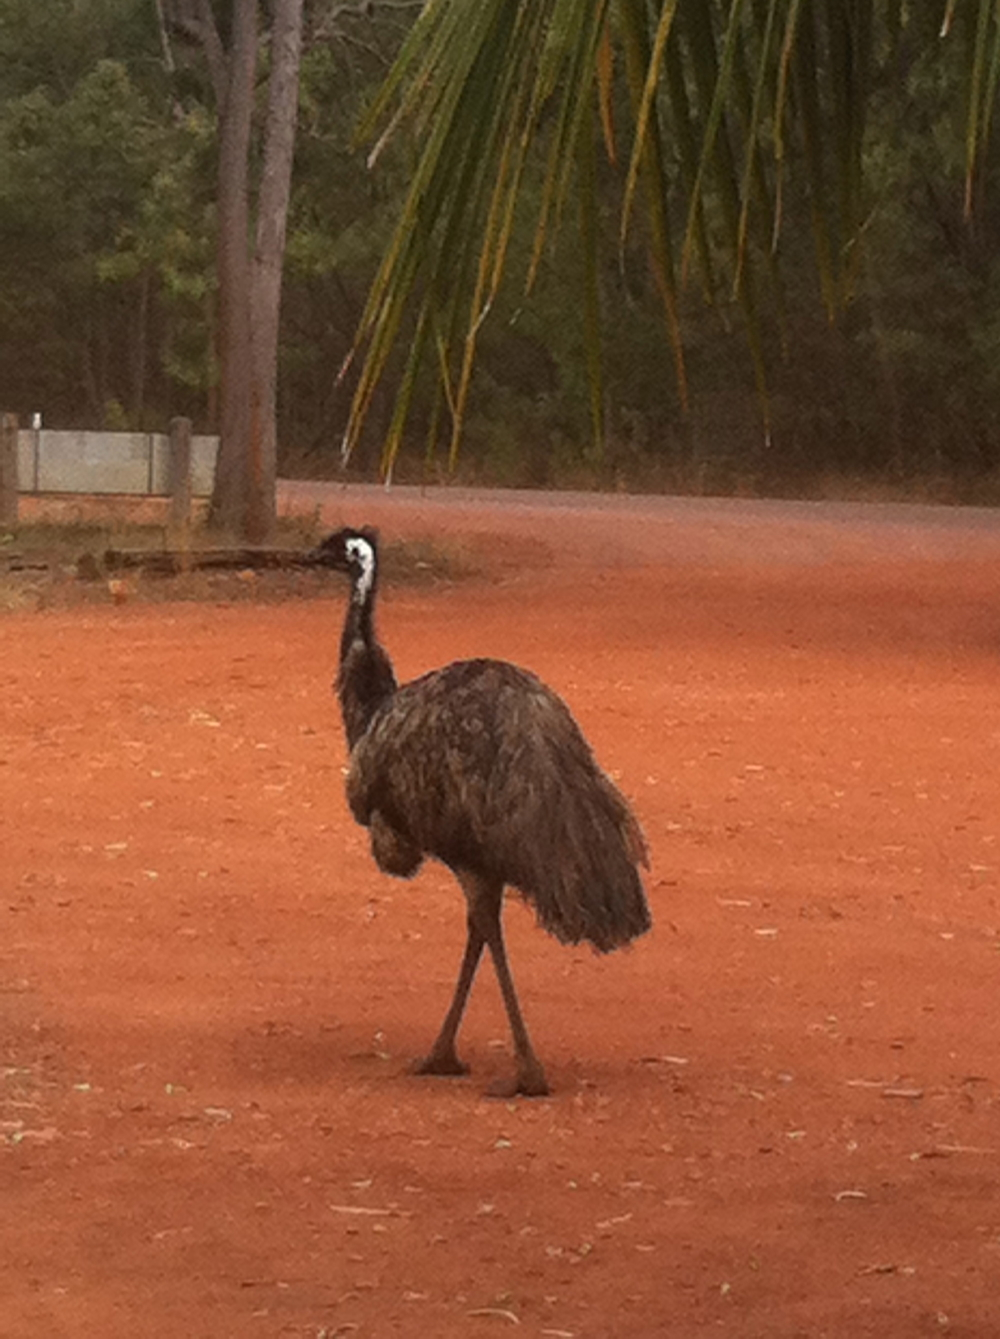 Greeted by Mr. Emu!